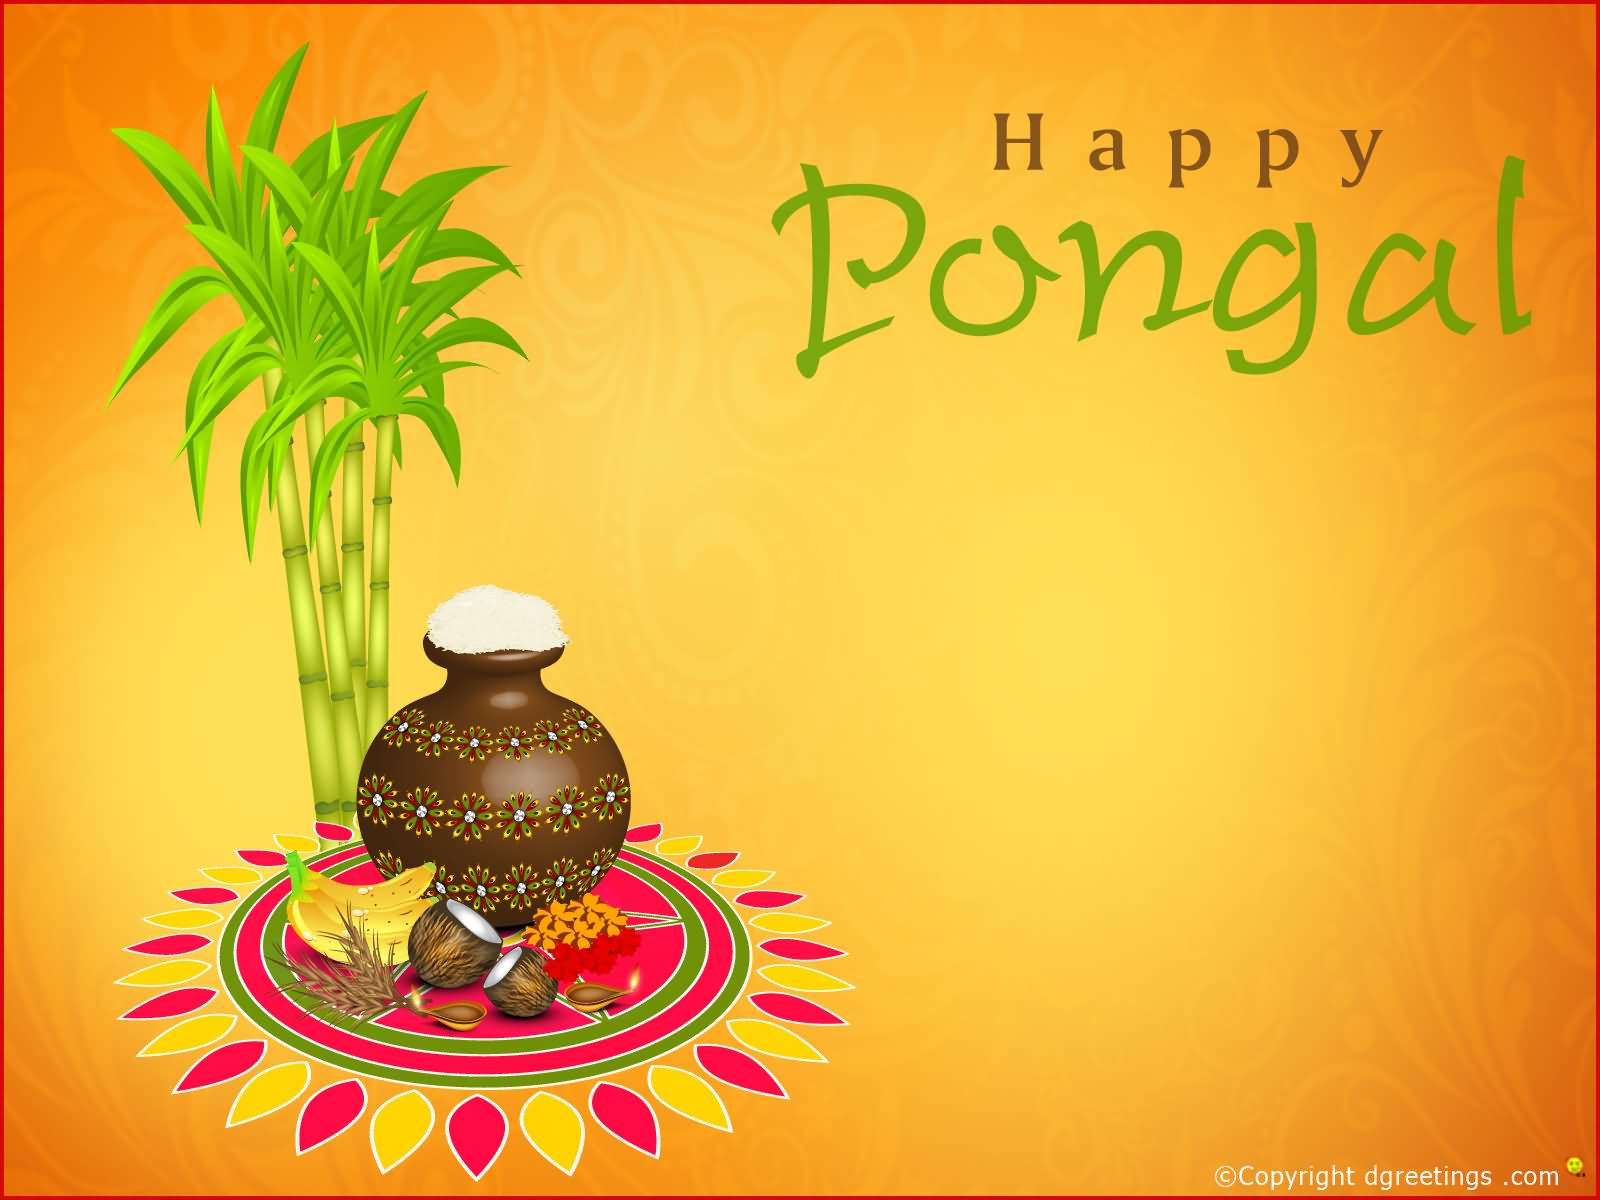 Top 20 Happy Pongal Wishes And Graphics Collection